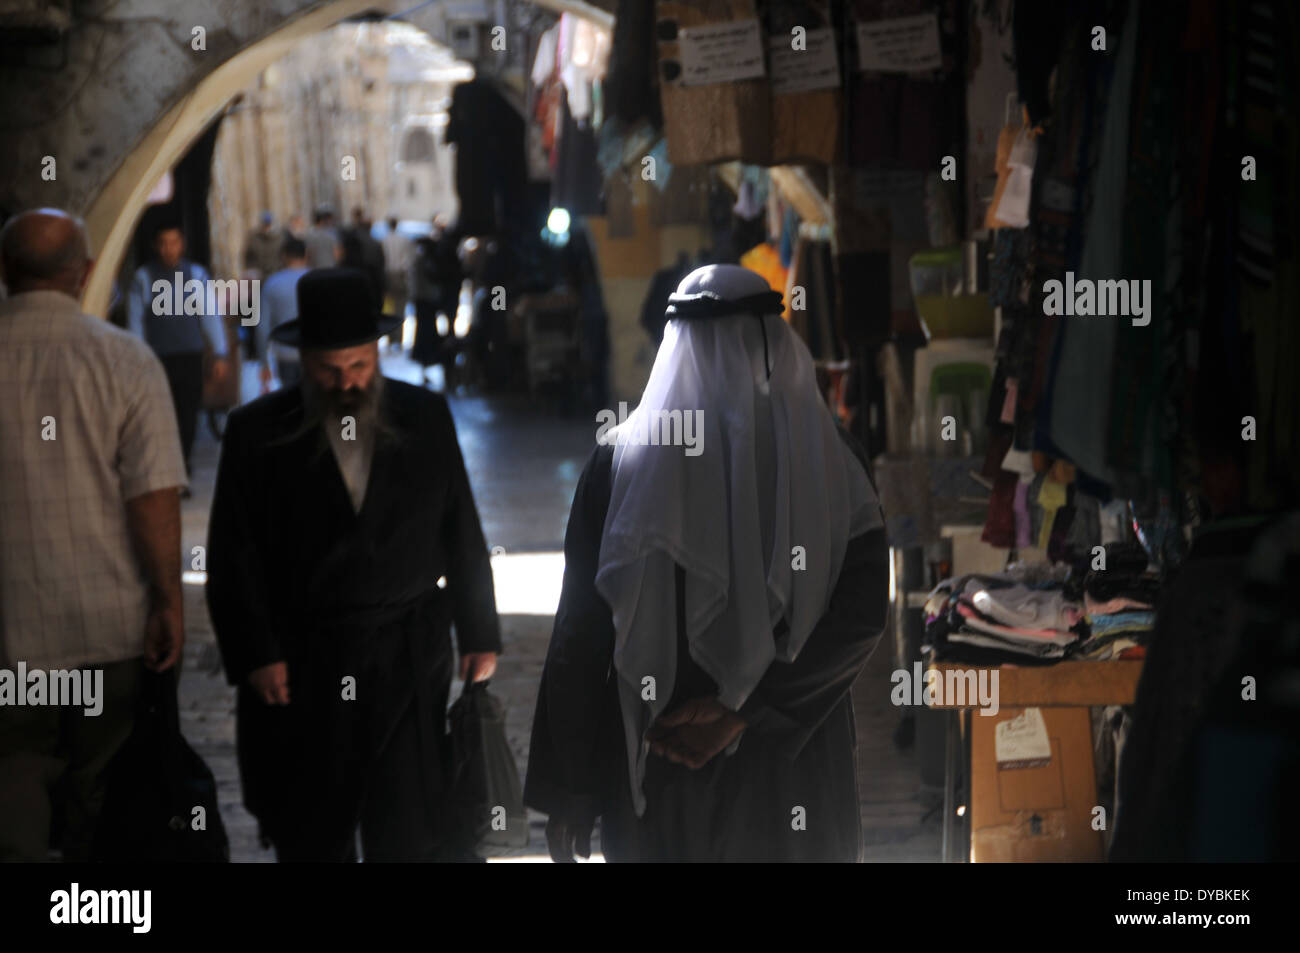 Jewish and Muslim men cross each other, walking in a narrow alley of the Muslim quarter, Old city of Jerusalem, Israel - Stock Image